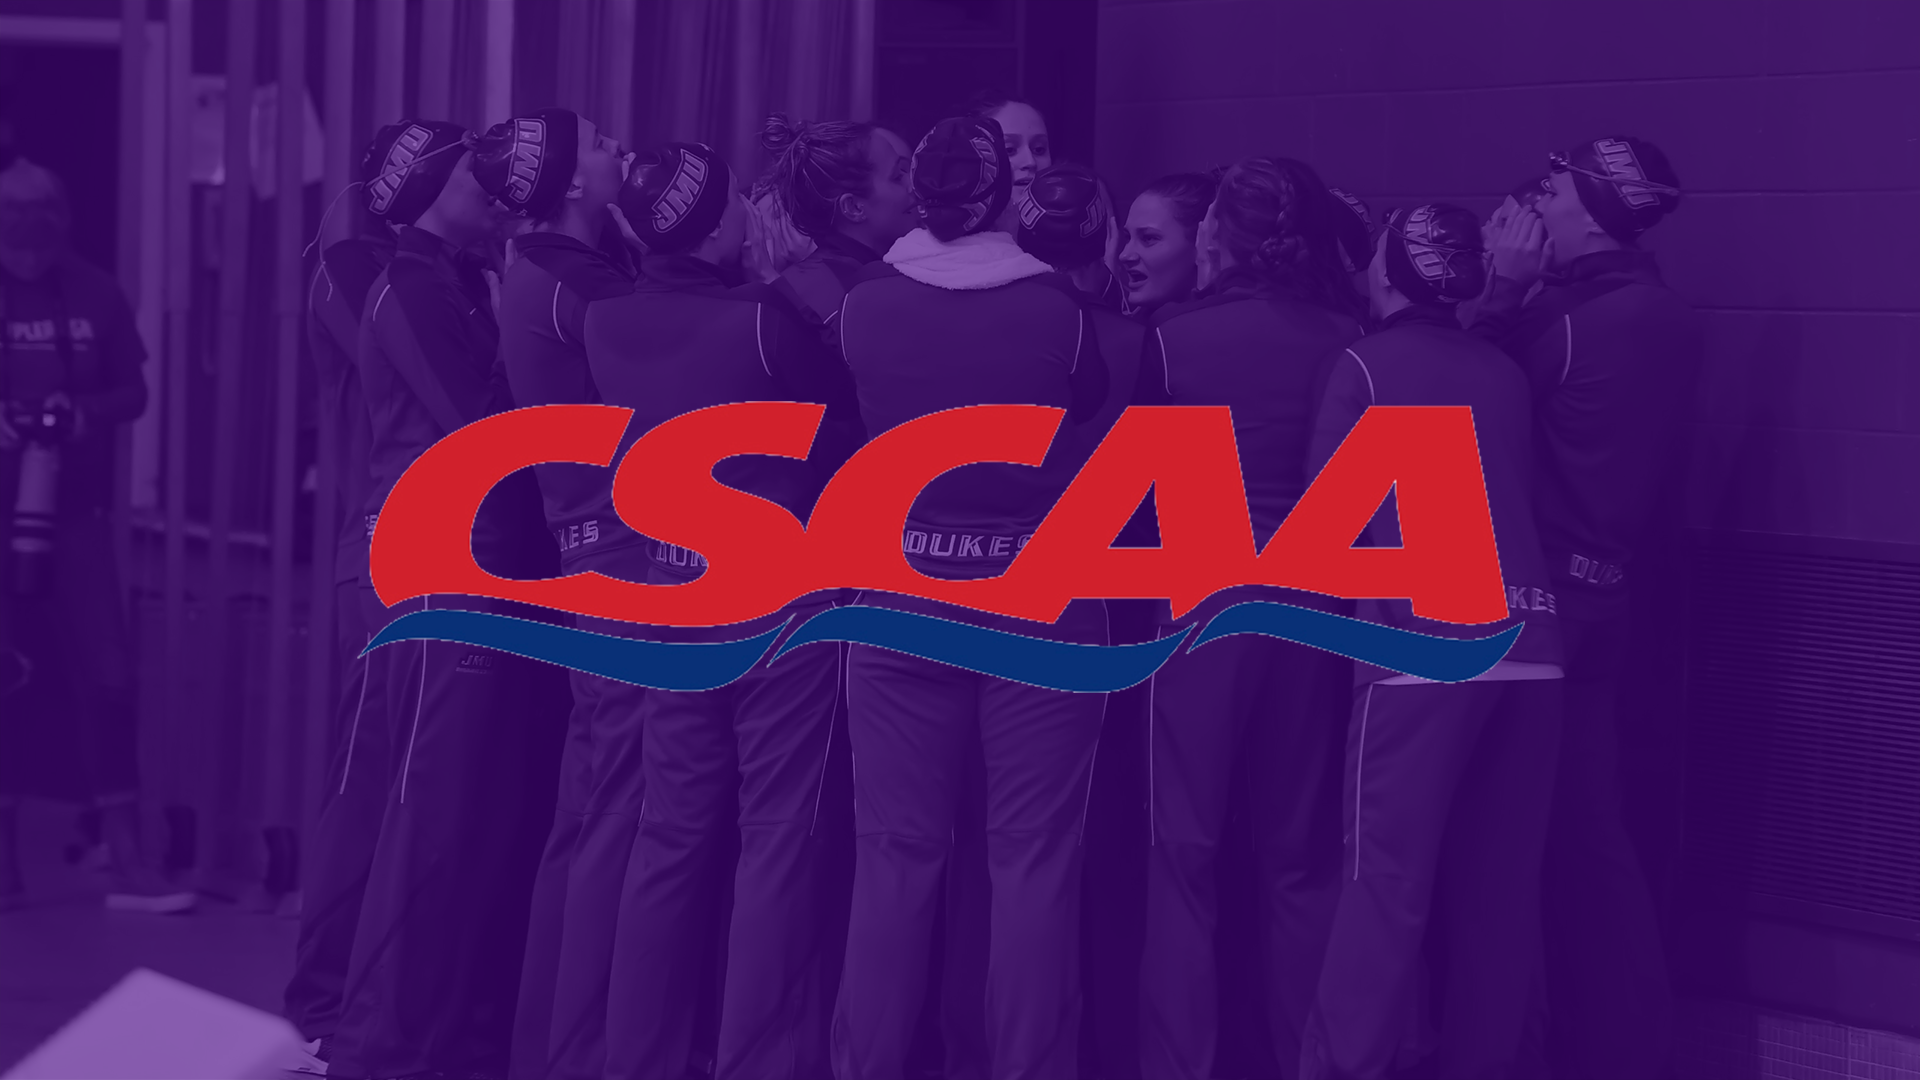 Swimming & Diving: Dukes Named to CSCAA Scholar All-America Team